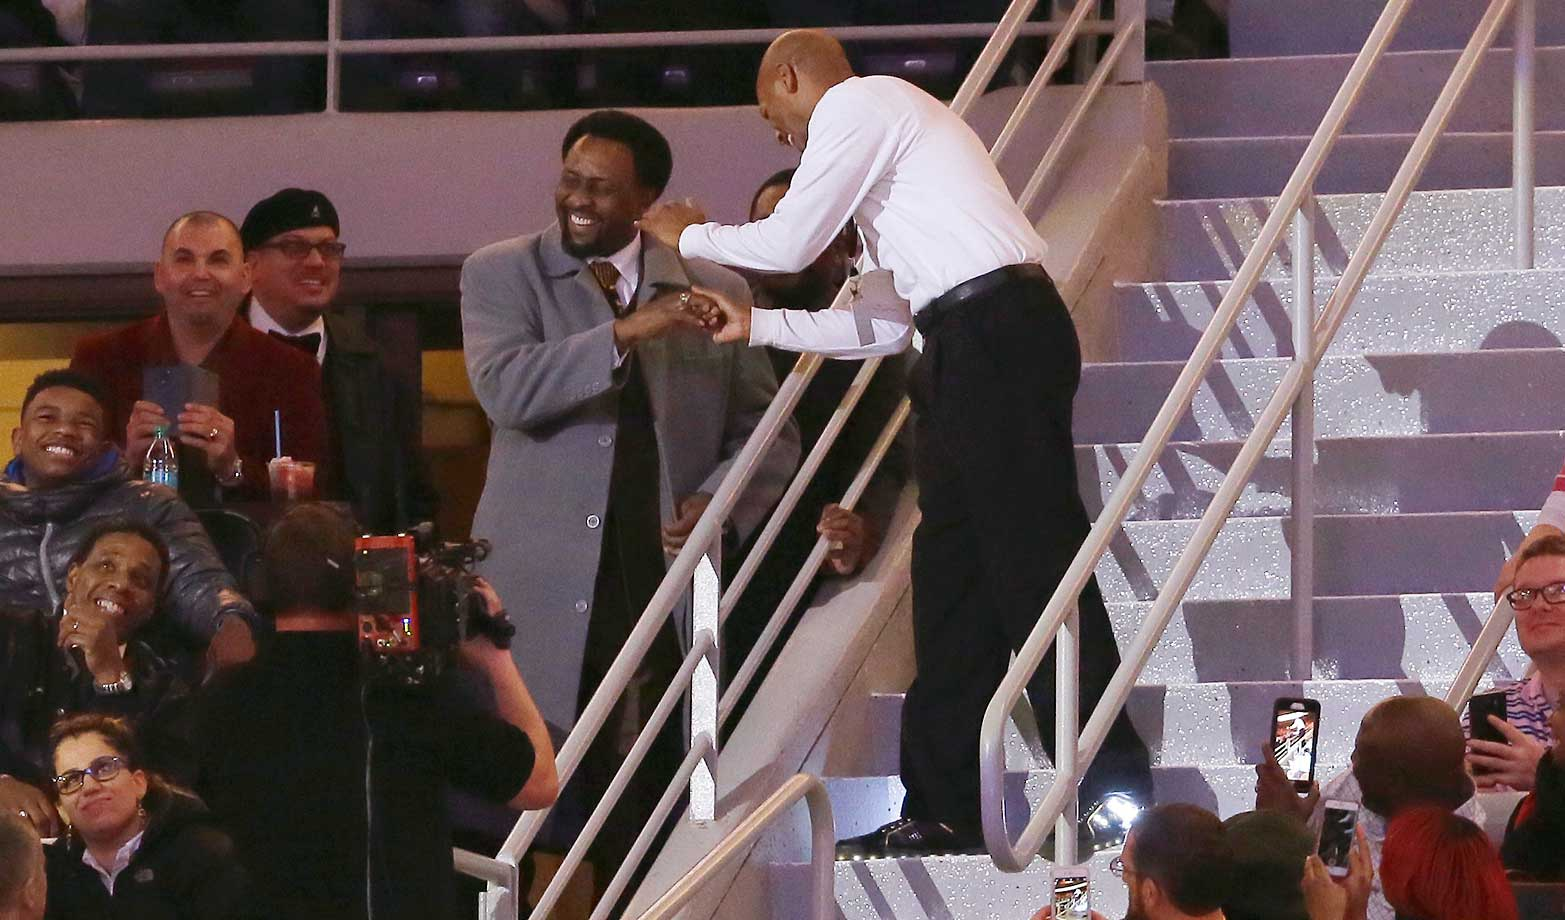 Detroit Pistons dancing usher Shannon Sailes, right, meets Thomas Hearns during a game between the Detroit Pistons and the Cleveland Cavaliers in Auburn Hills, Mich.